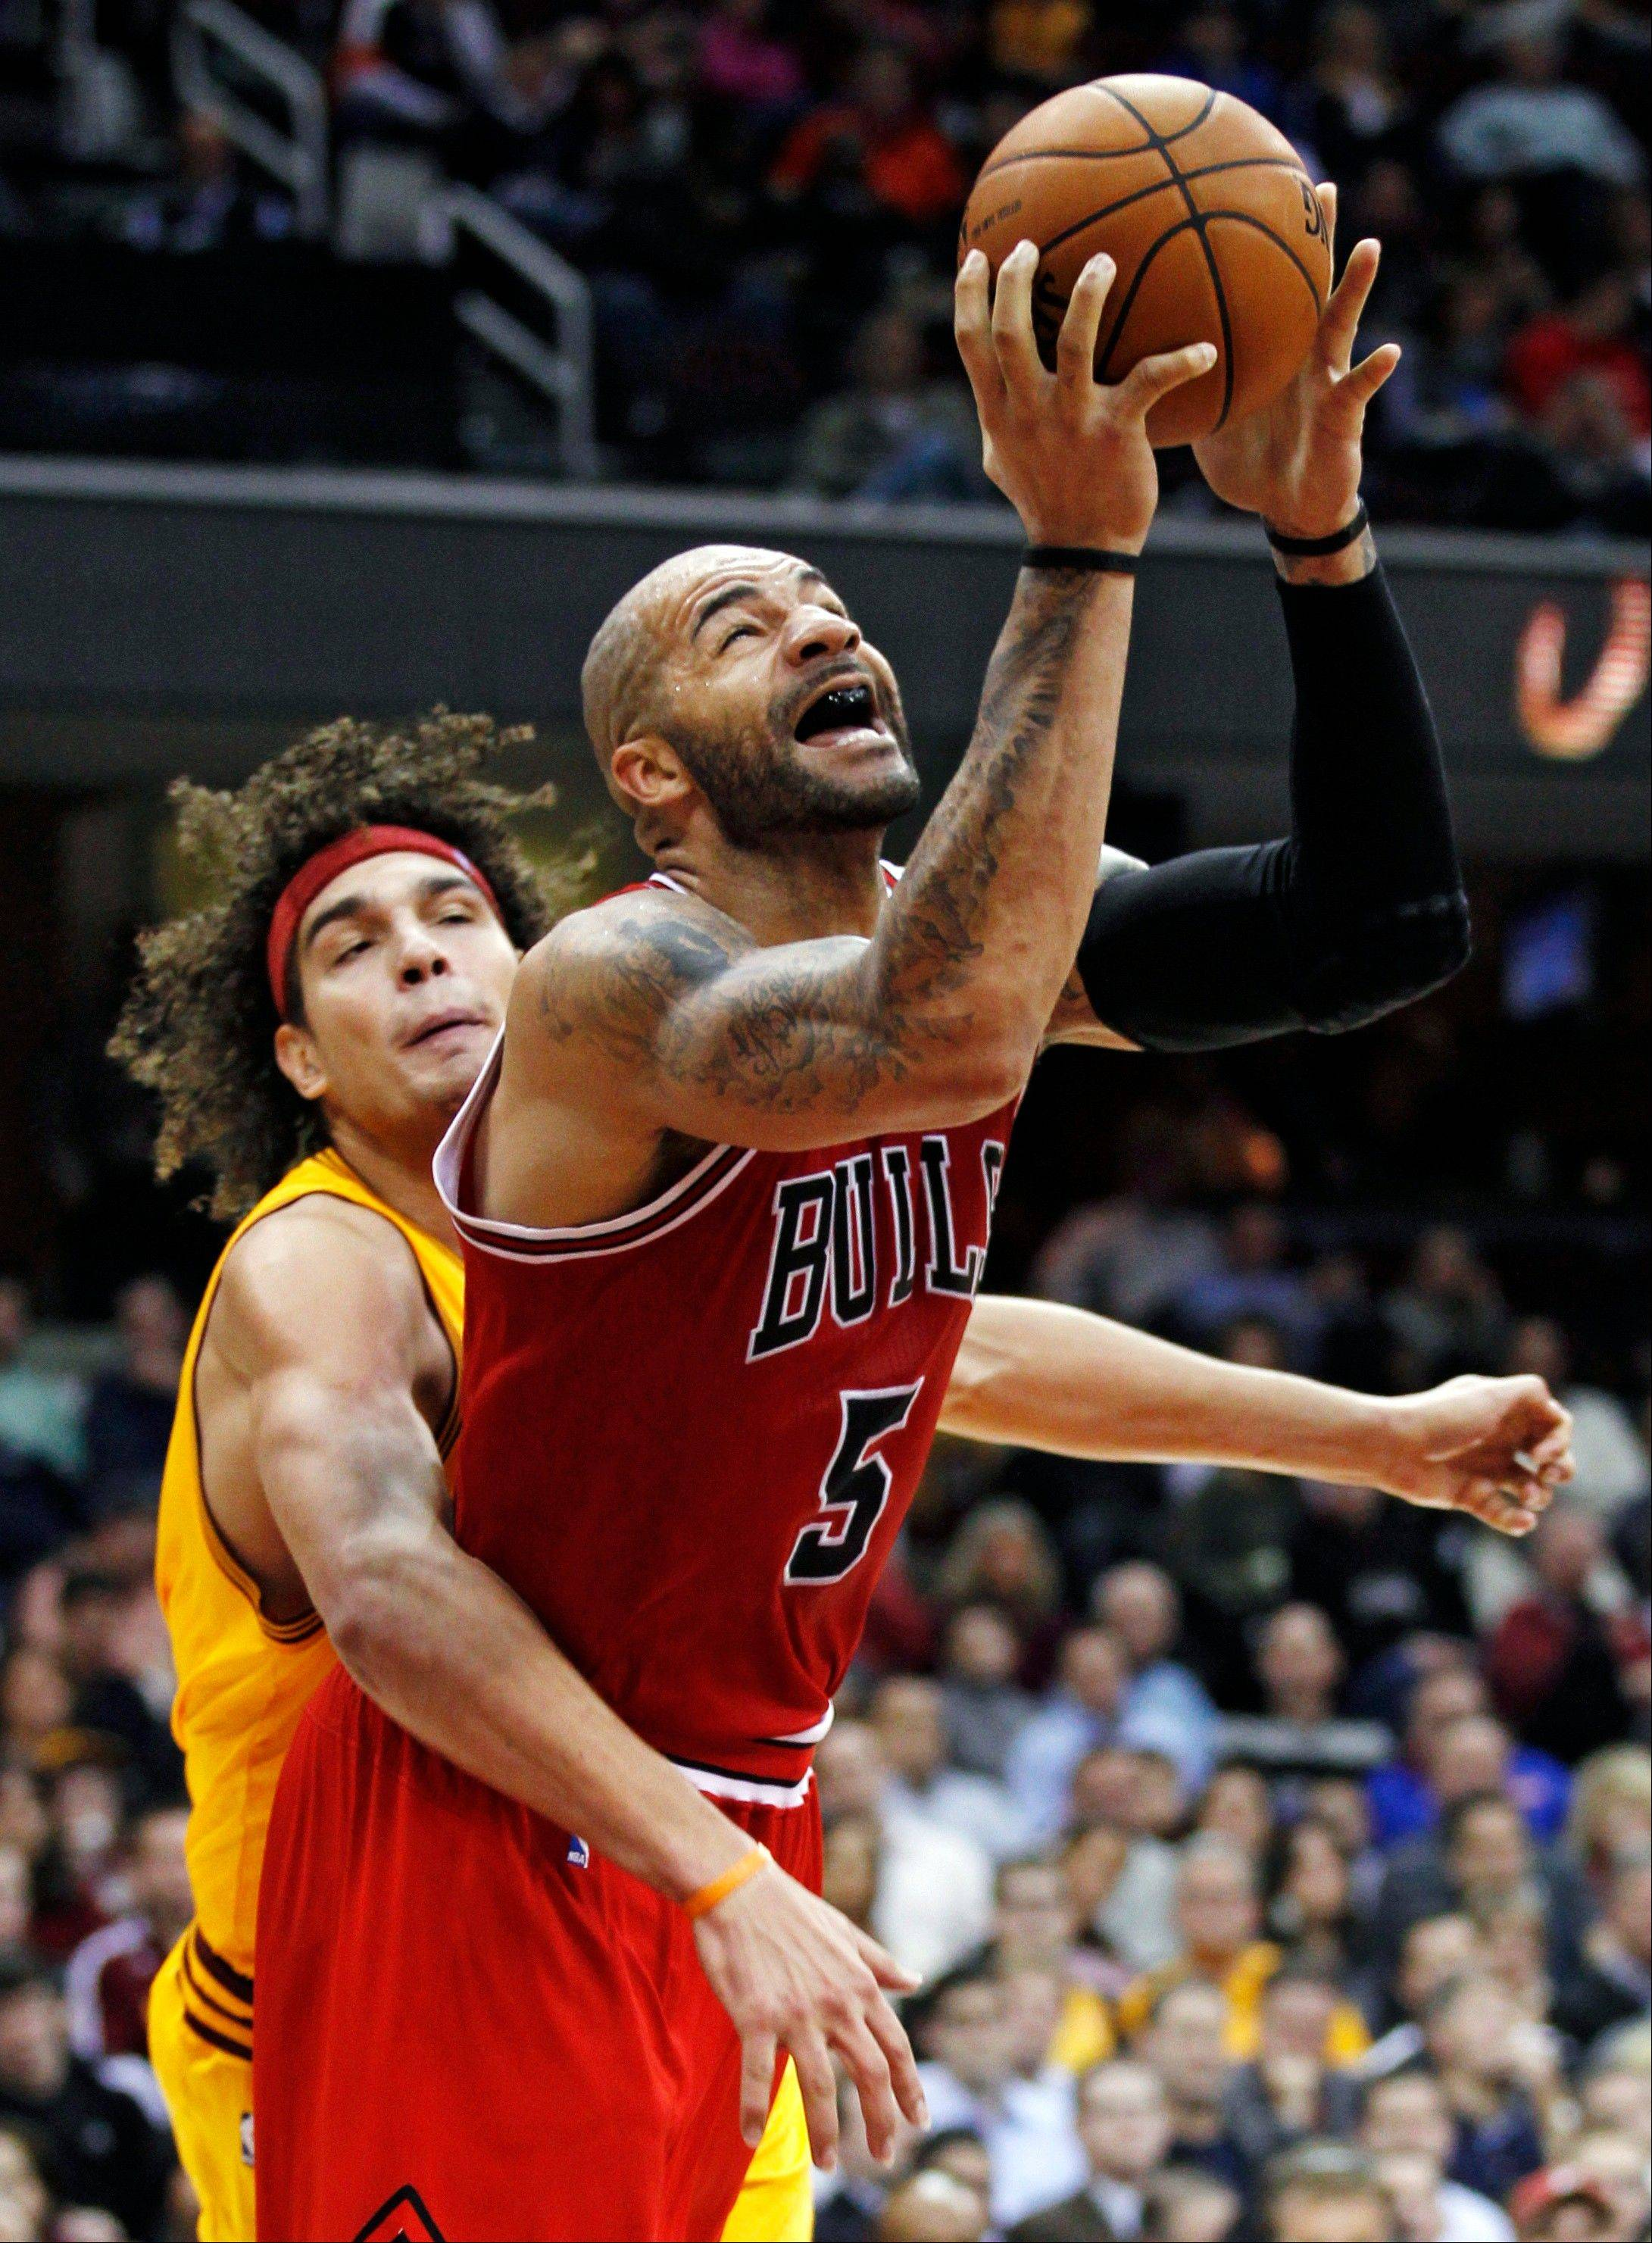 Chicago Bulls' Carlos Boozer (5) is fouled by Cleveland Cavaliers' Anderson Varejao (17), of Brazil, during the third quarter of an NBA basketball game, Wednesday, Dec. 5, 2012, in Cleveland. The Bulls won 95-85.